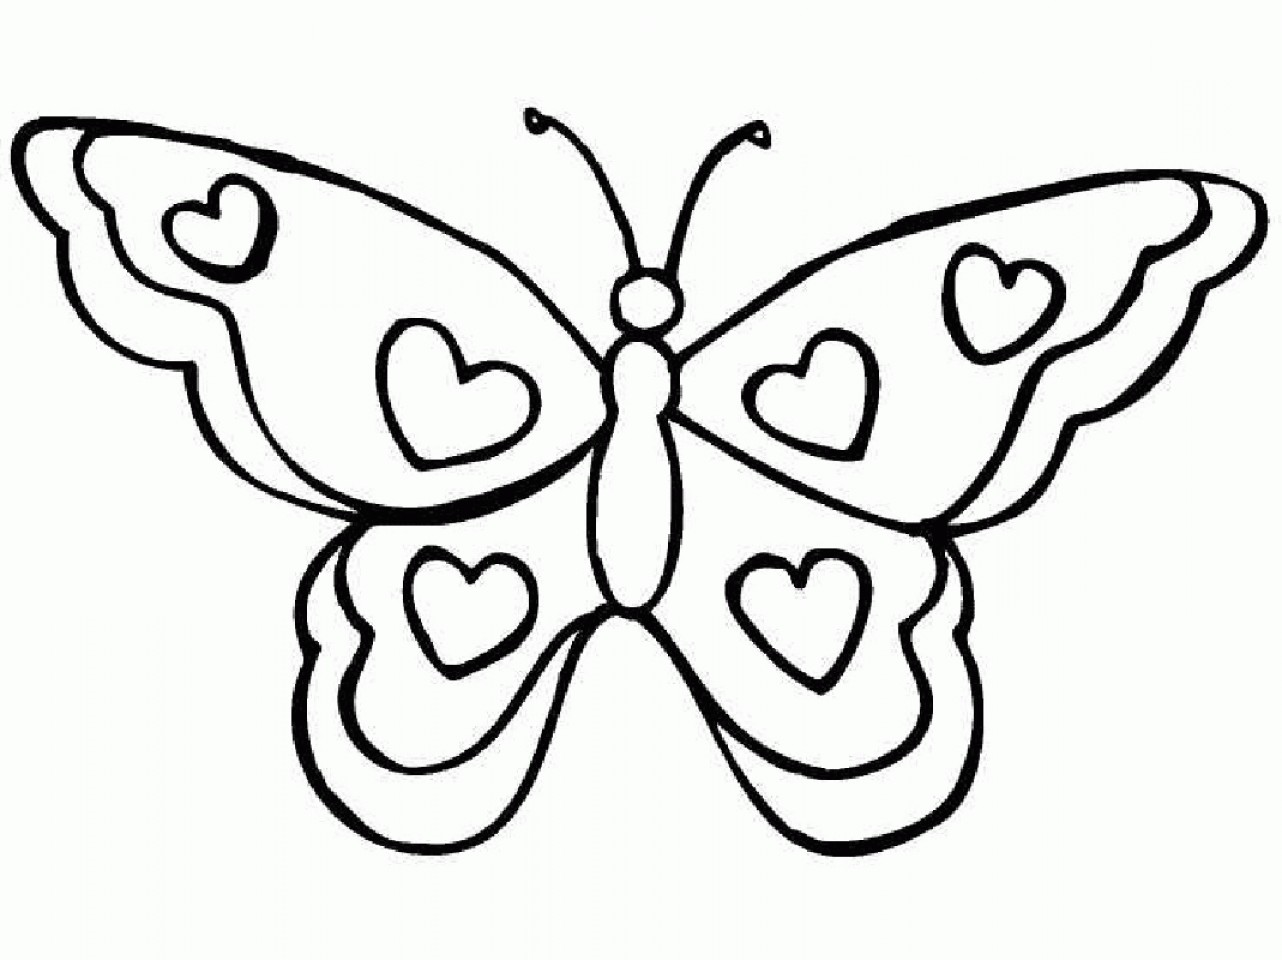 Butterfly Easy Drawing at GetDrawings.com | Free for personal use ...